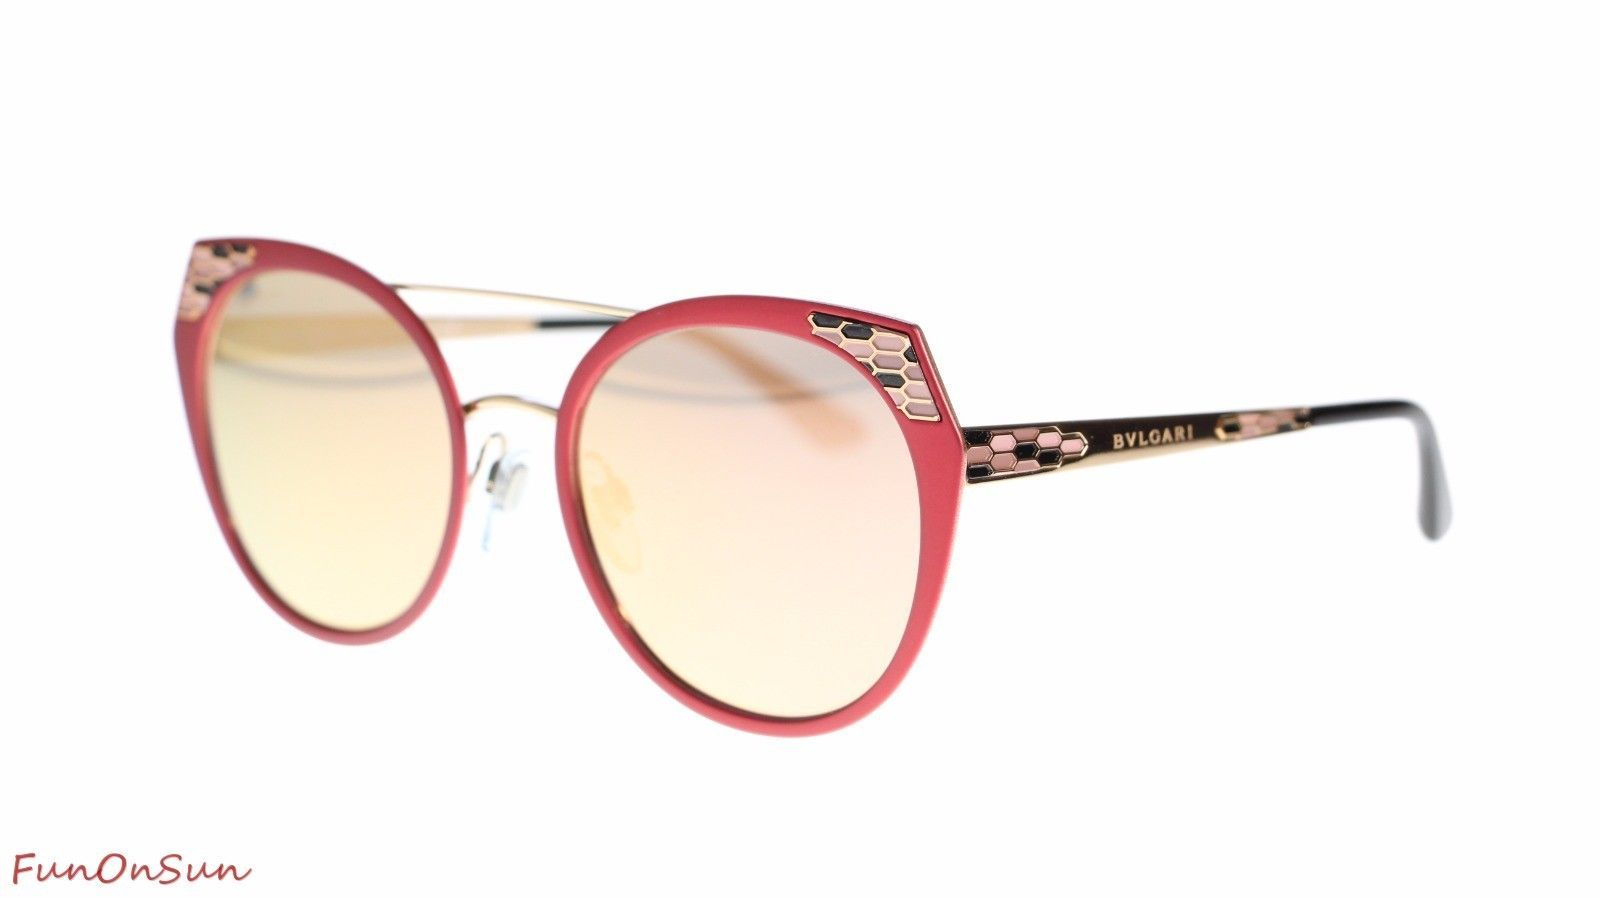 BVLGARI Women's Sunglasses BV6095 20274Z Matte Pink/Grey Mirror Rose Gold Lens 5